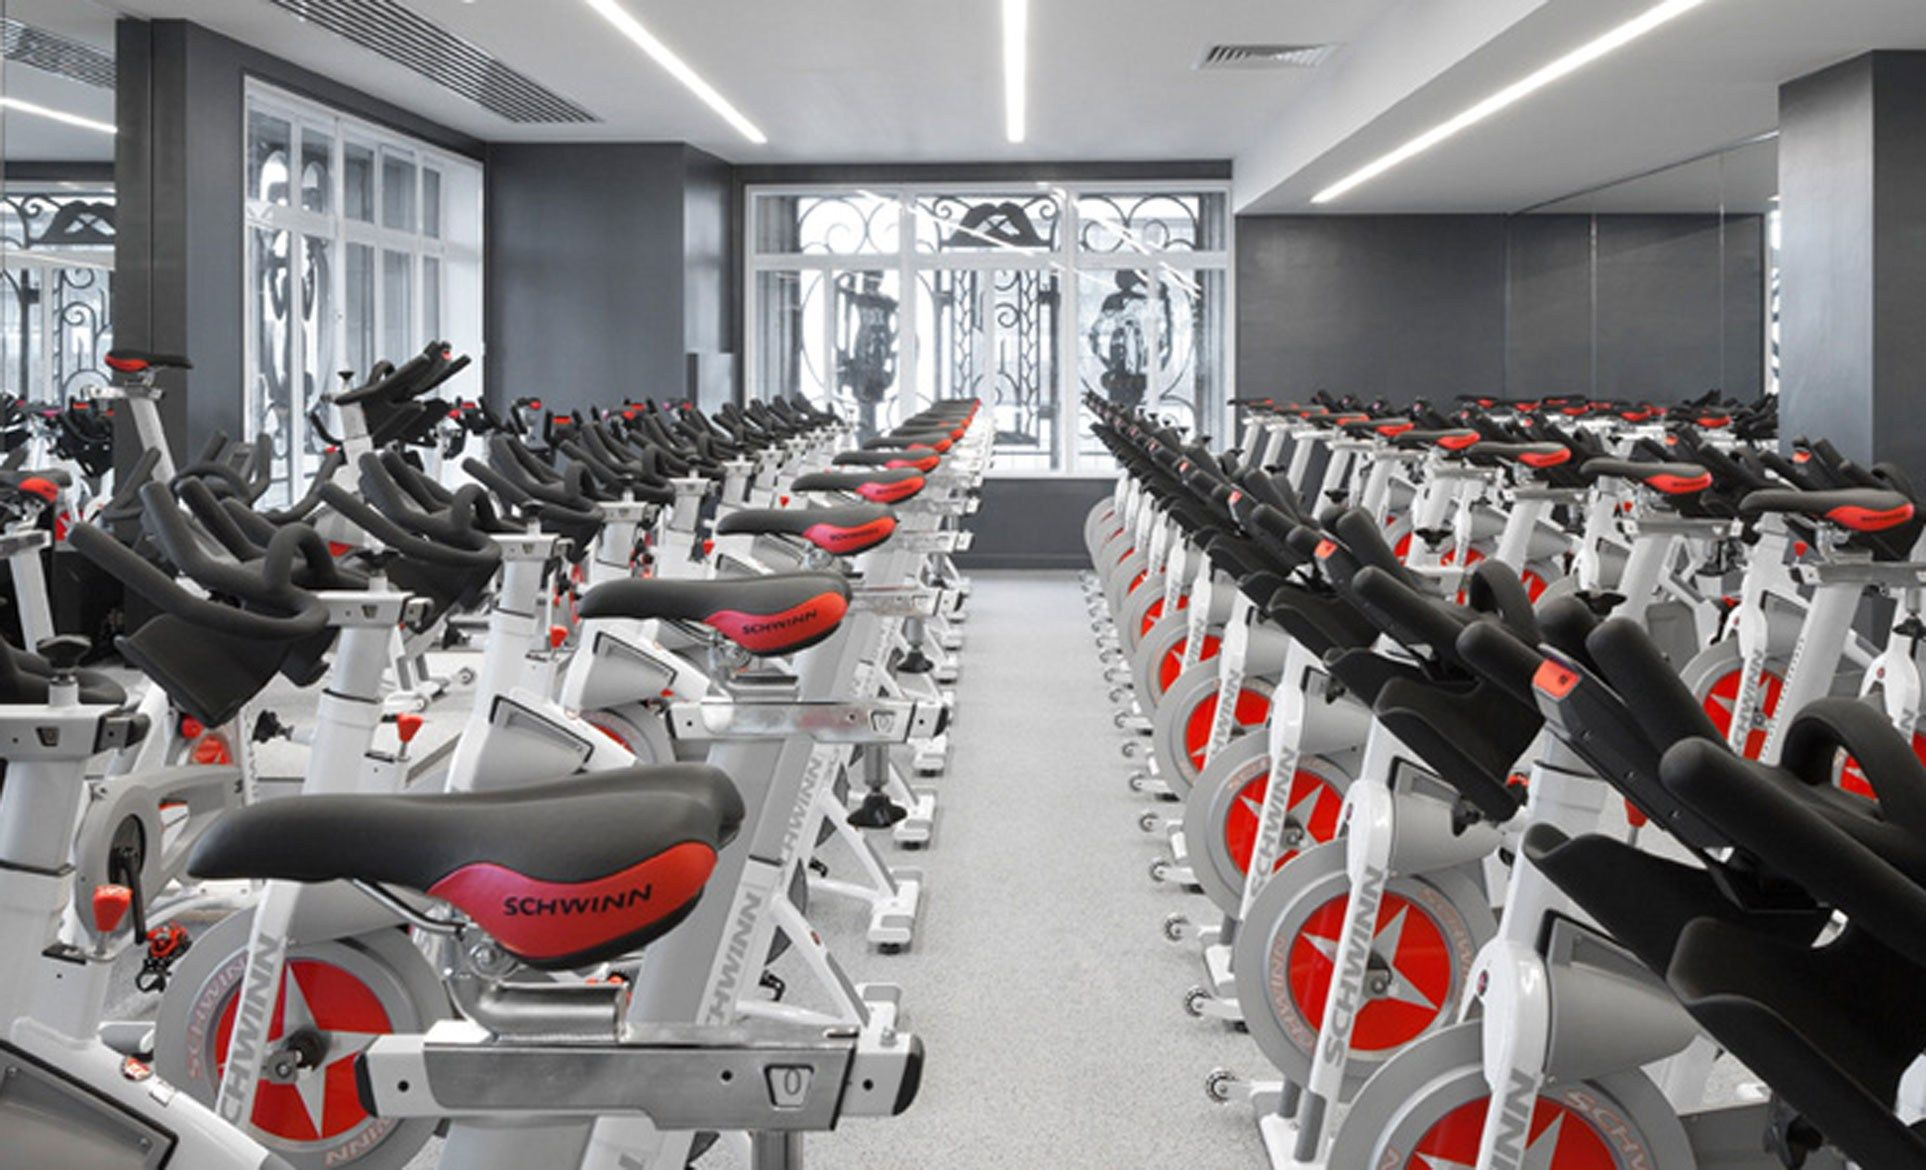 Among Fitness Clubs In London, Equinox Kensington Is A Visually